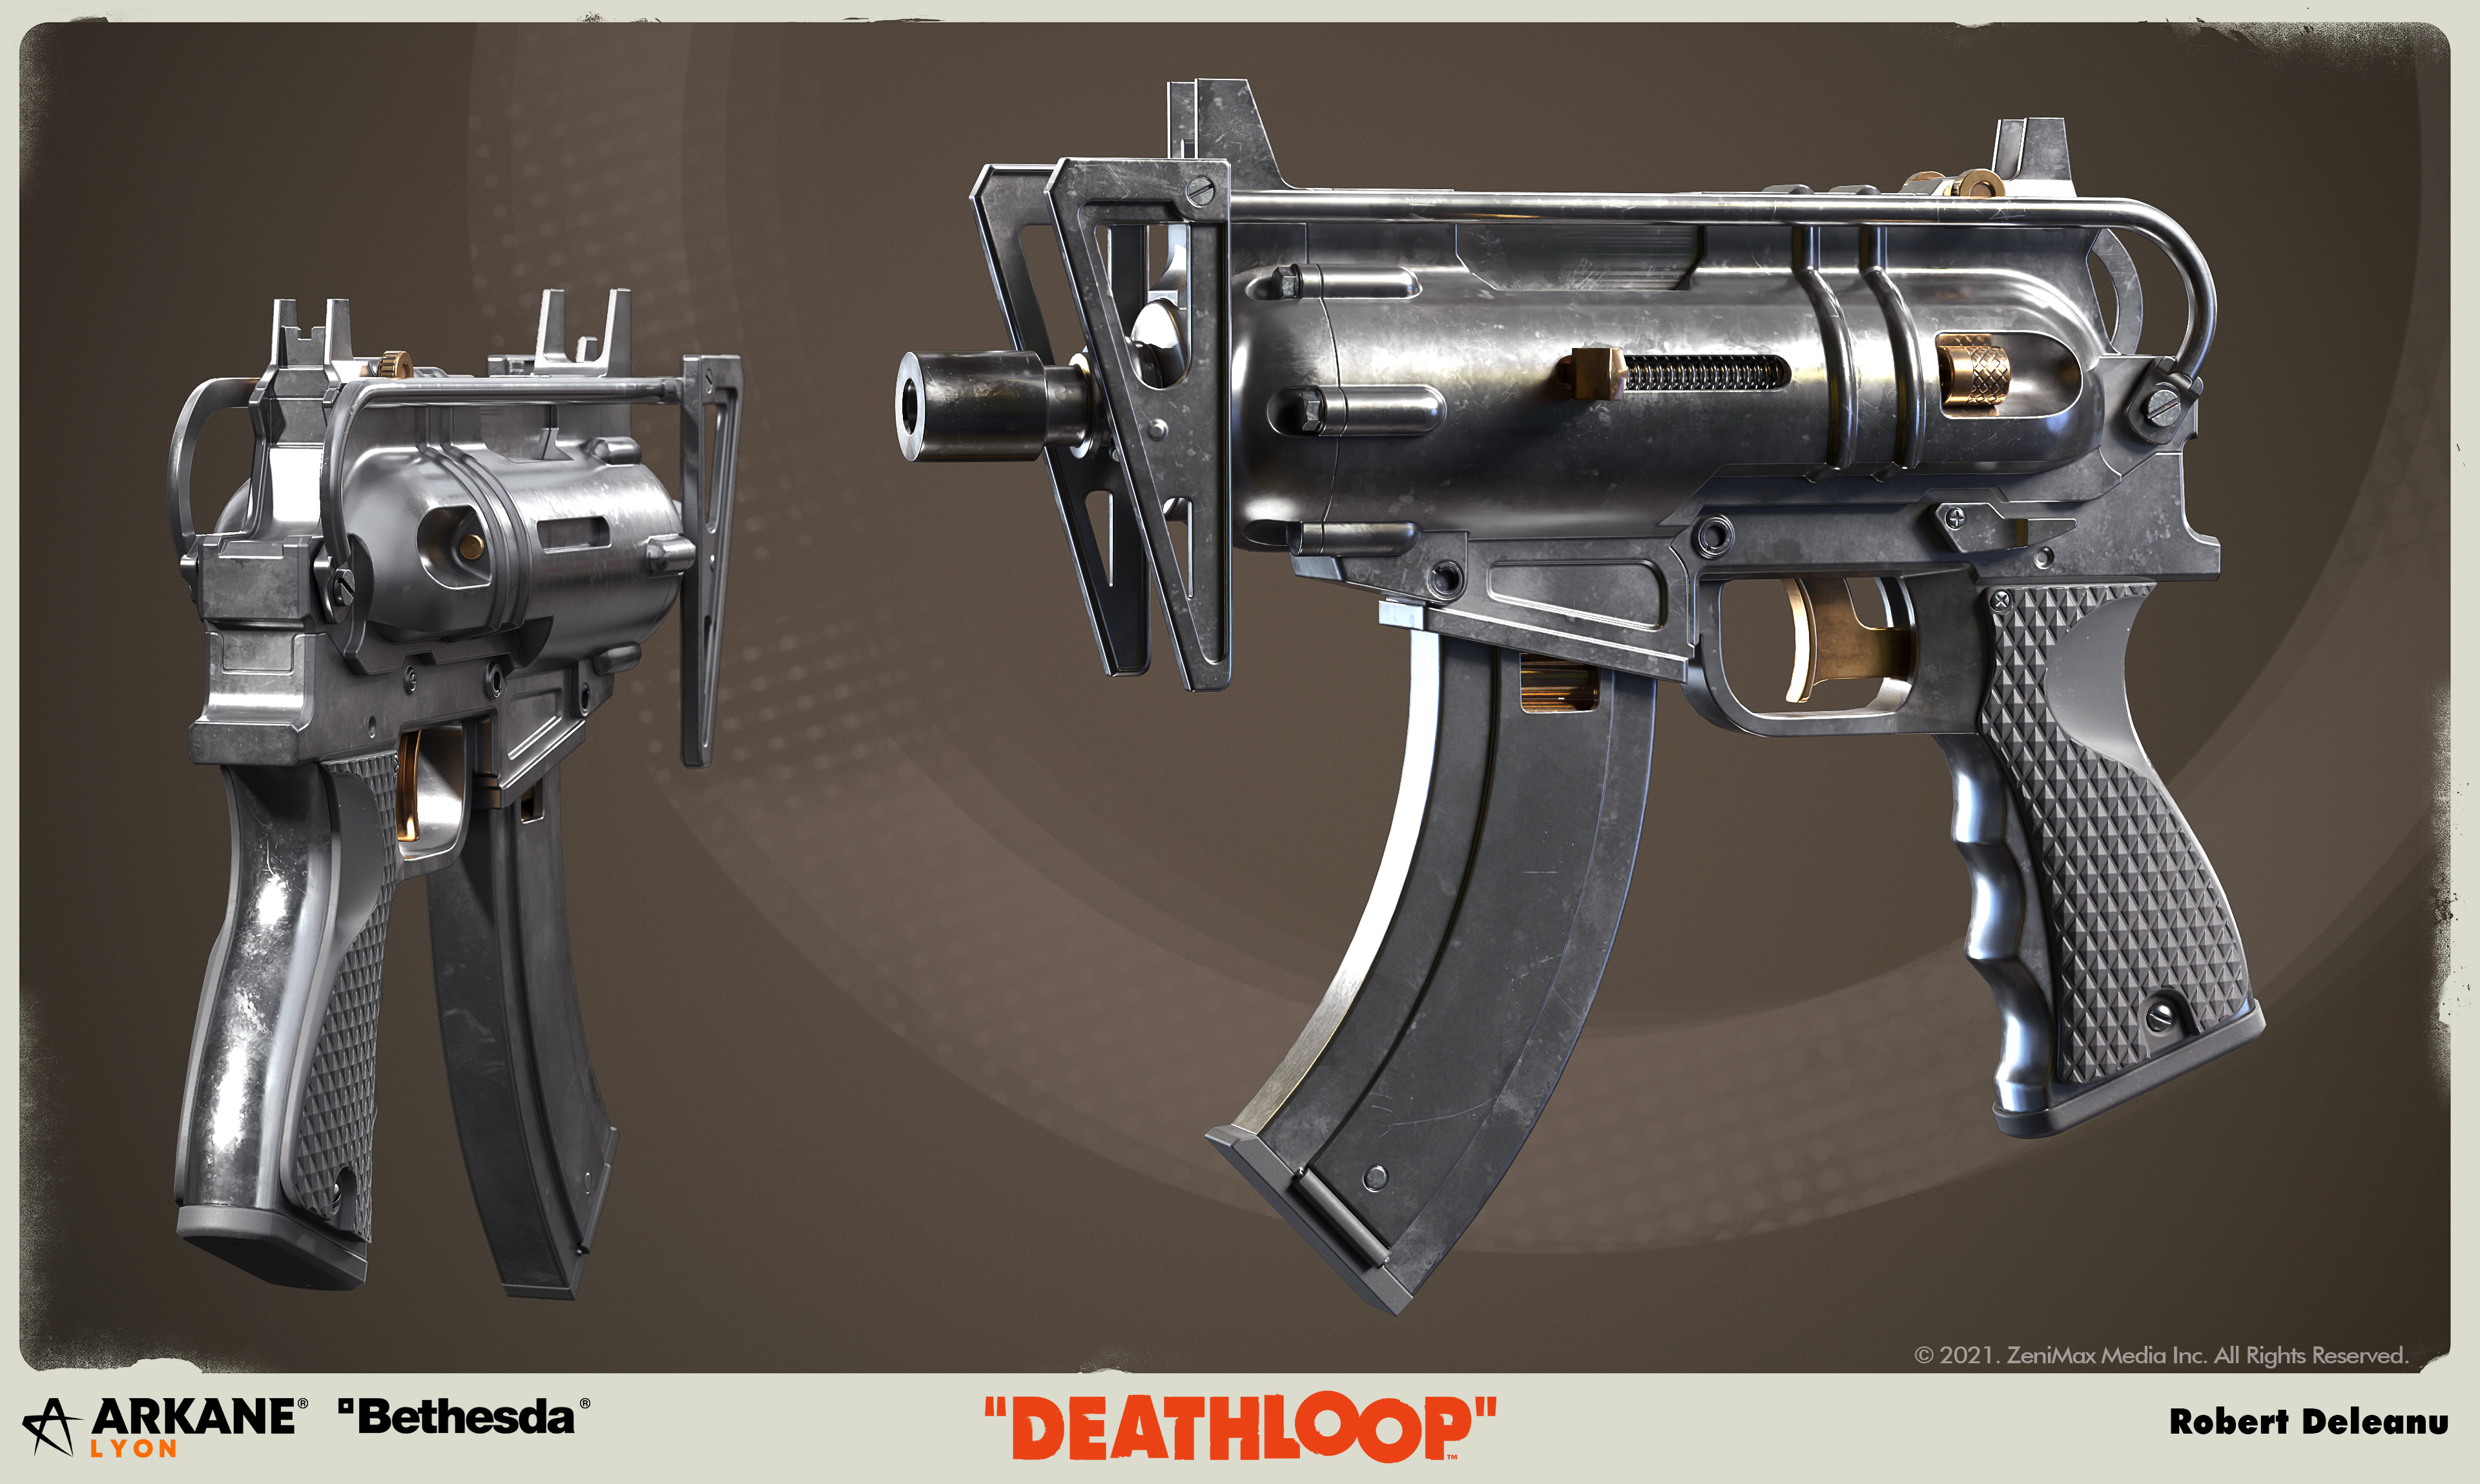 Dual wielding these is a lot of fun, allthough you'll be burning through ammo before you realise it.